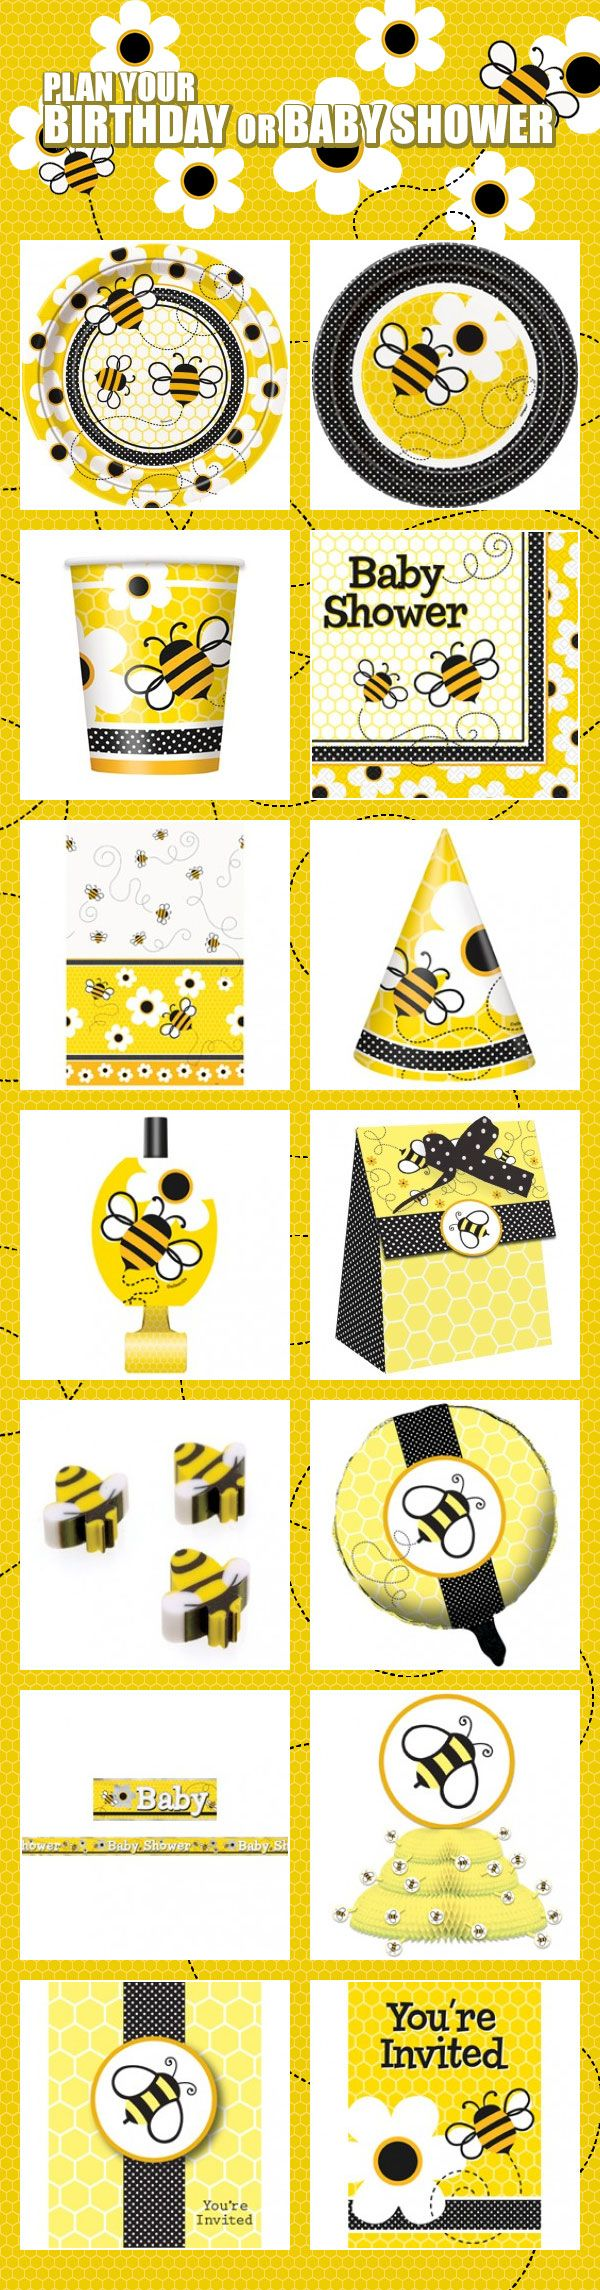 Need some supplies for your baby shower? Try our very cute and popular bee themed party supplies! They're perfect for both a birthday or baby shower and include tableware, decorations, favors, and more. Start planning your party or baby shower today: http://www.discountpartysupplies.com/special-events/baby-showers/bee-party-baby-shower-supplies?utm_source=Pinterest&utm_medium=social&utm_content=PinterestImageBoard&utm_campaign=BeePromotedPin